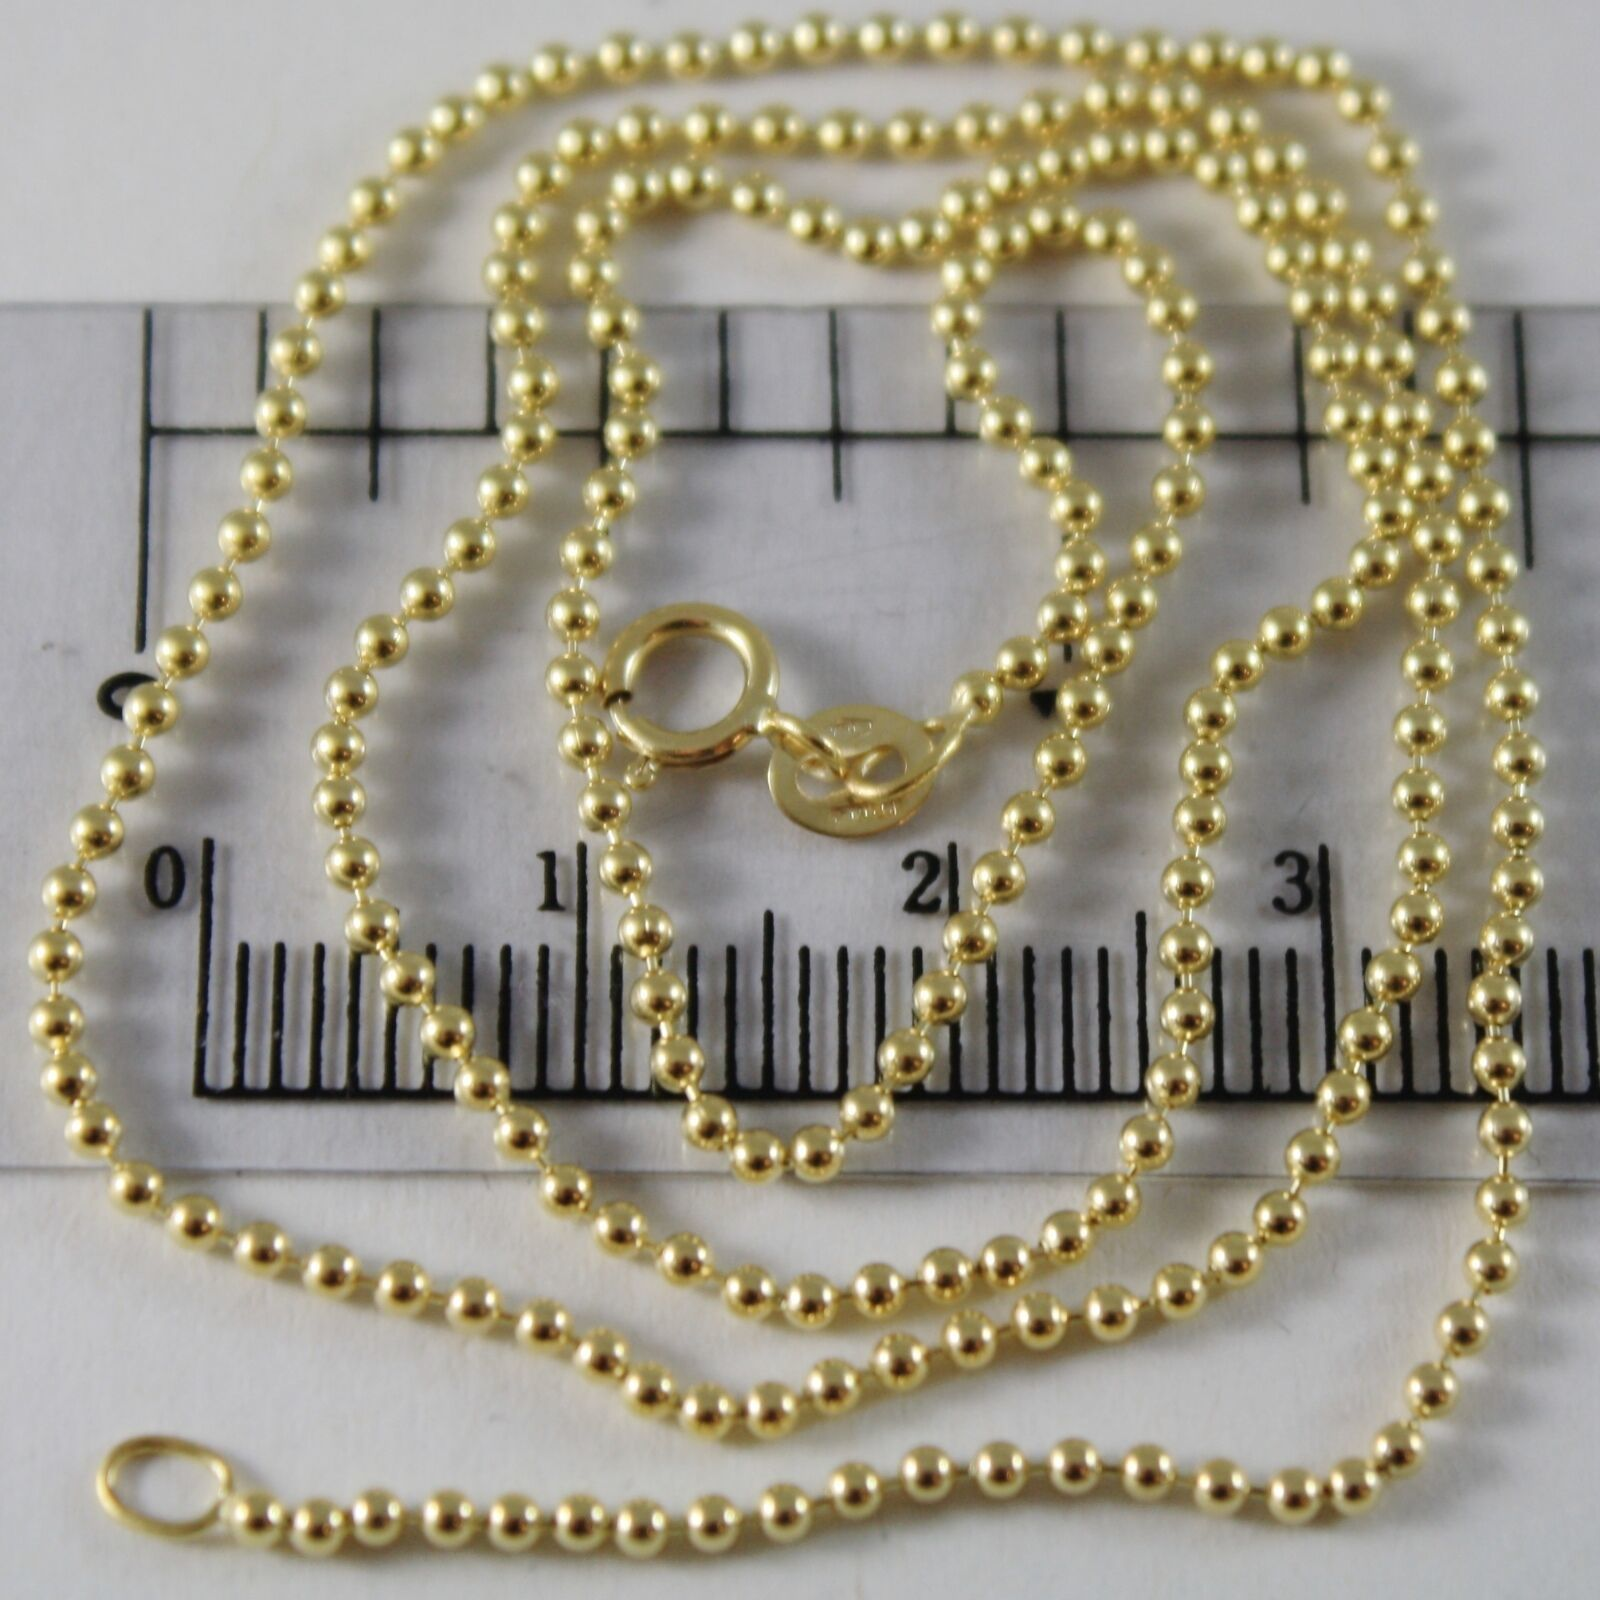 18K YELLOW GOLD CHAIN MINI BALLS BALL SPHERES 1.5 MM, 19.70 INCH, MADE IN ITALY